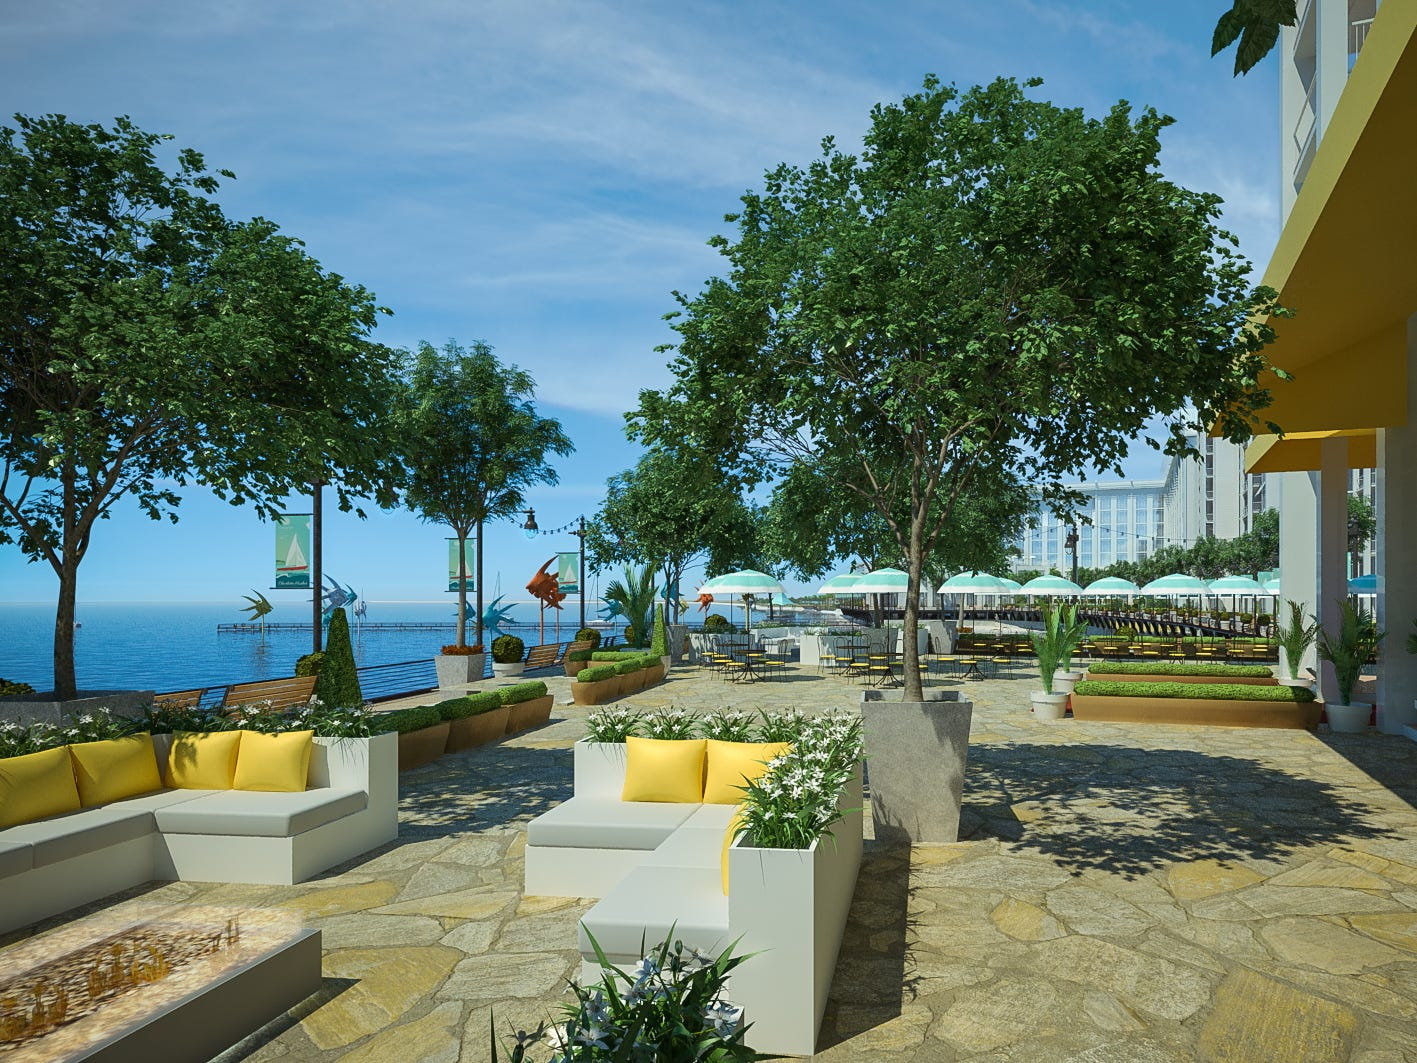 Allegiant says it plans to break ground in February 2019 on the Sunseeker Resort Charlotte Harbor in southwest Florida, its first foray outside the airline business.